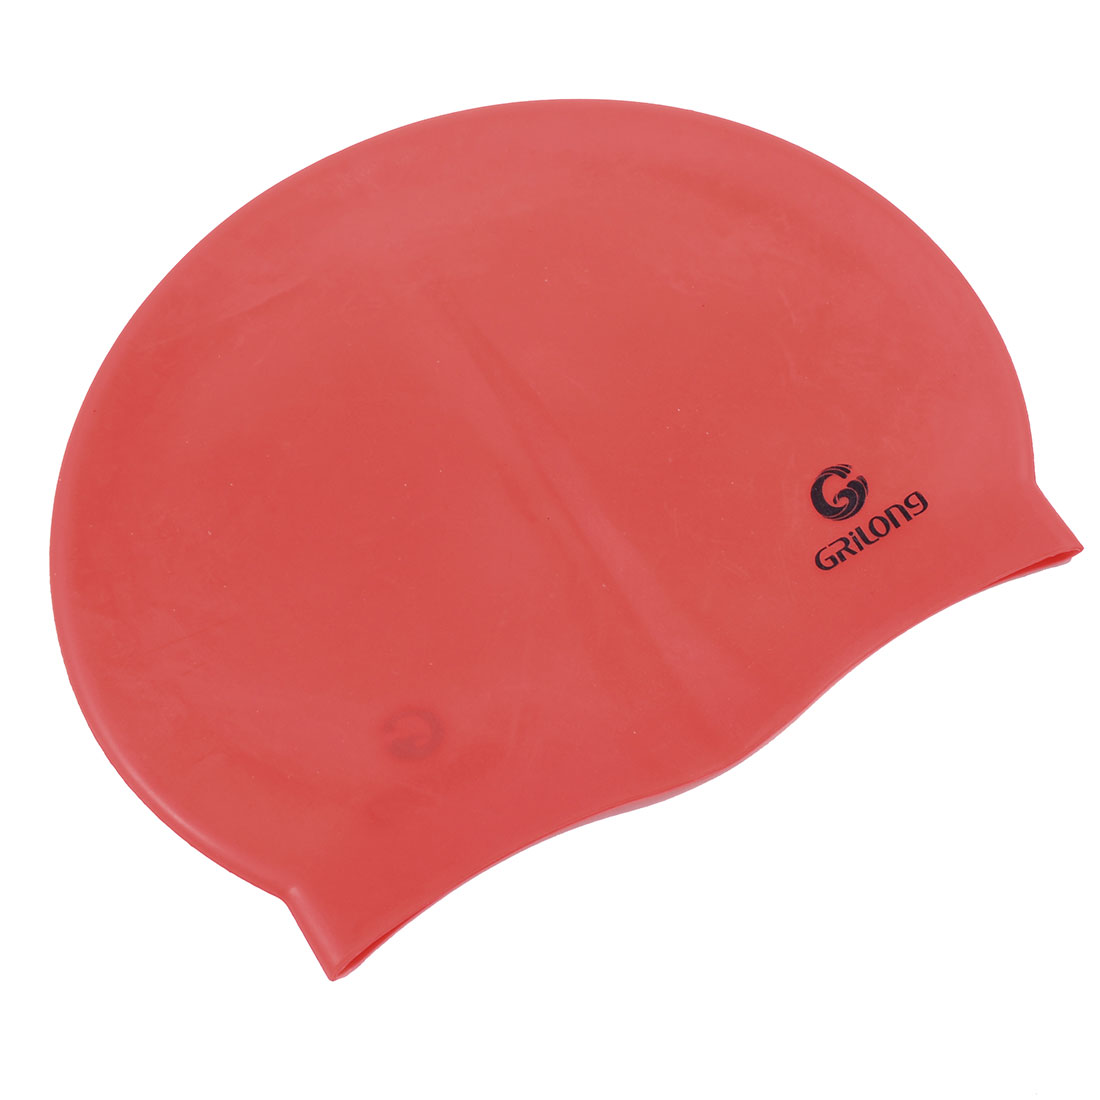 Unique Bargains Stretchy Waterproof Silicon Ear Hair Protection Swimming Cap Hat For Women Men by